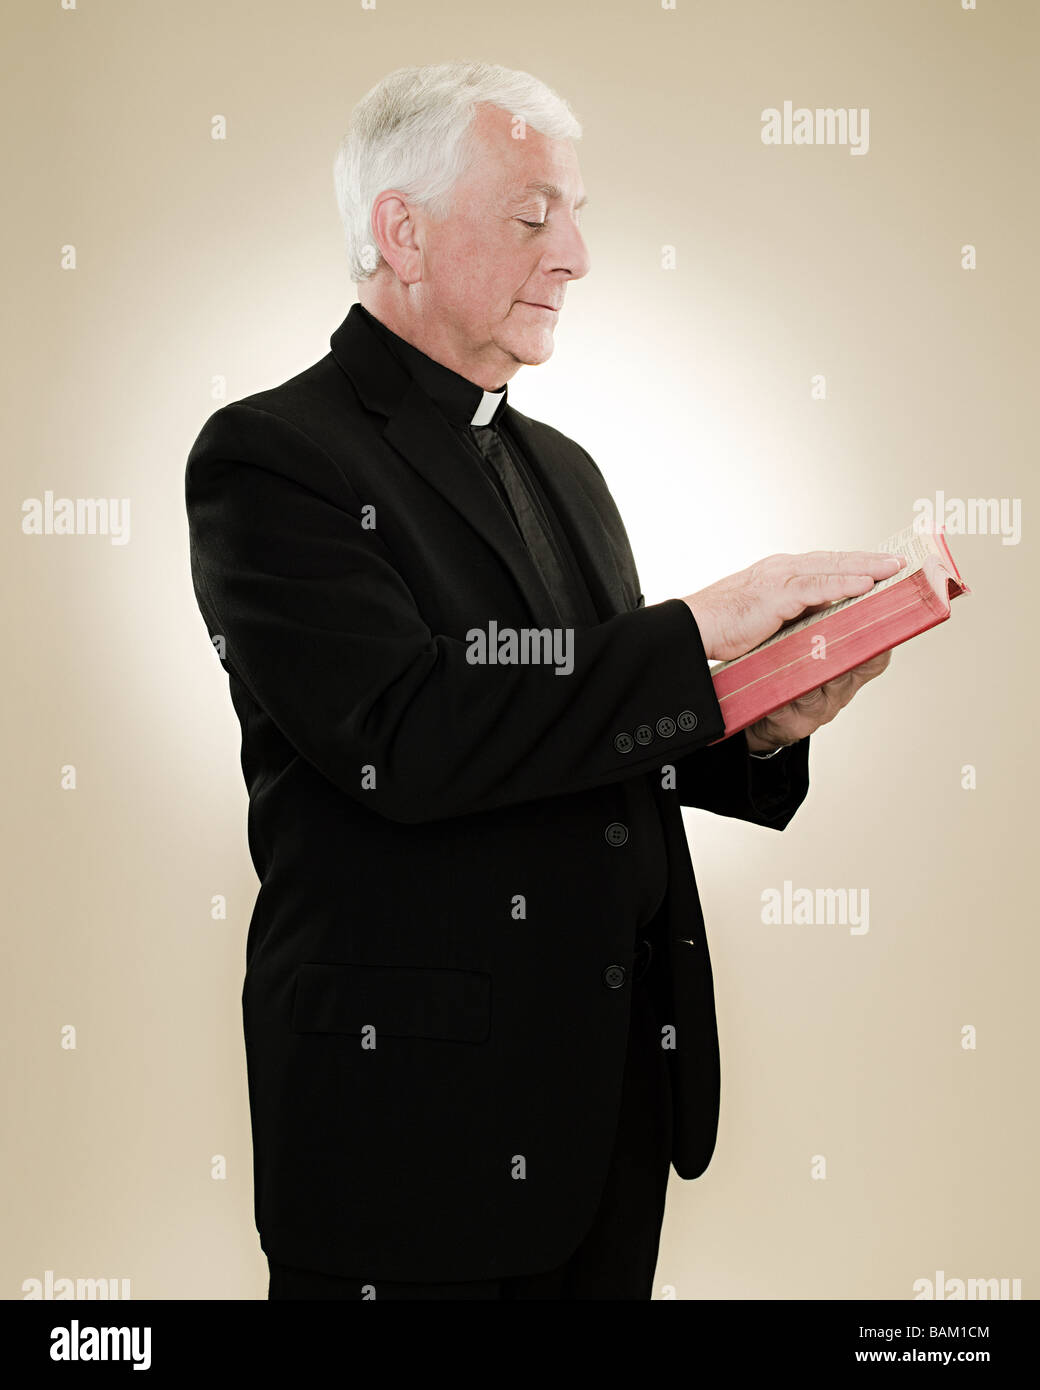 A priest reading a bible - Stock Image